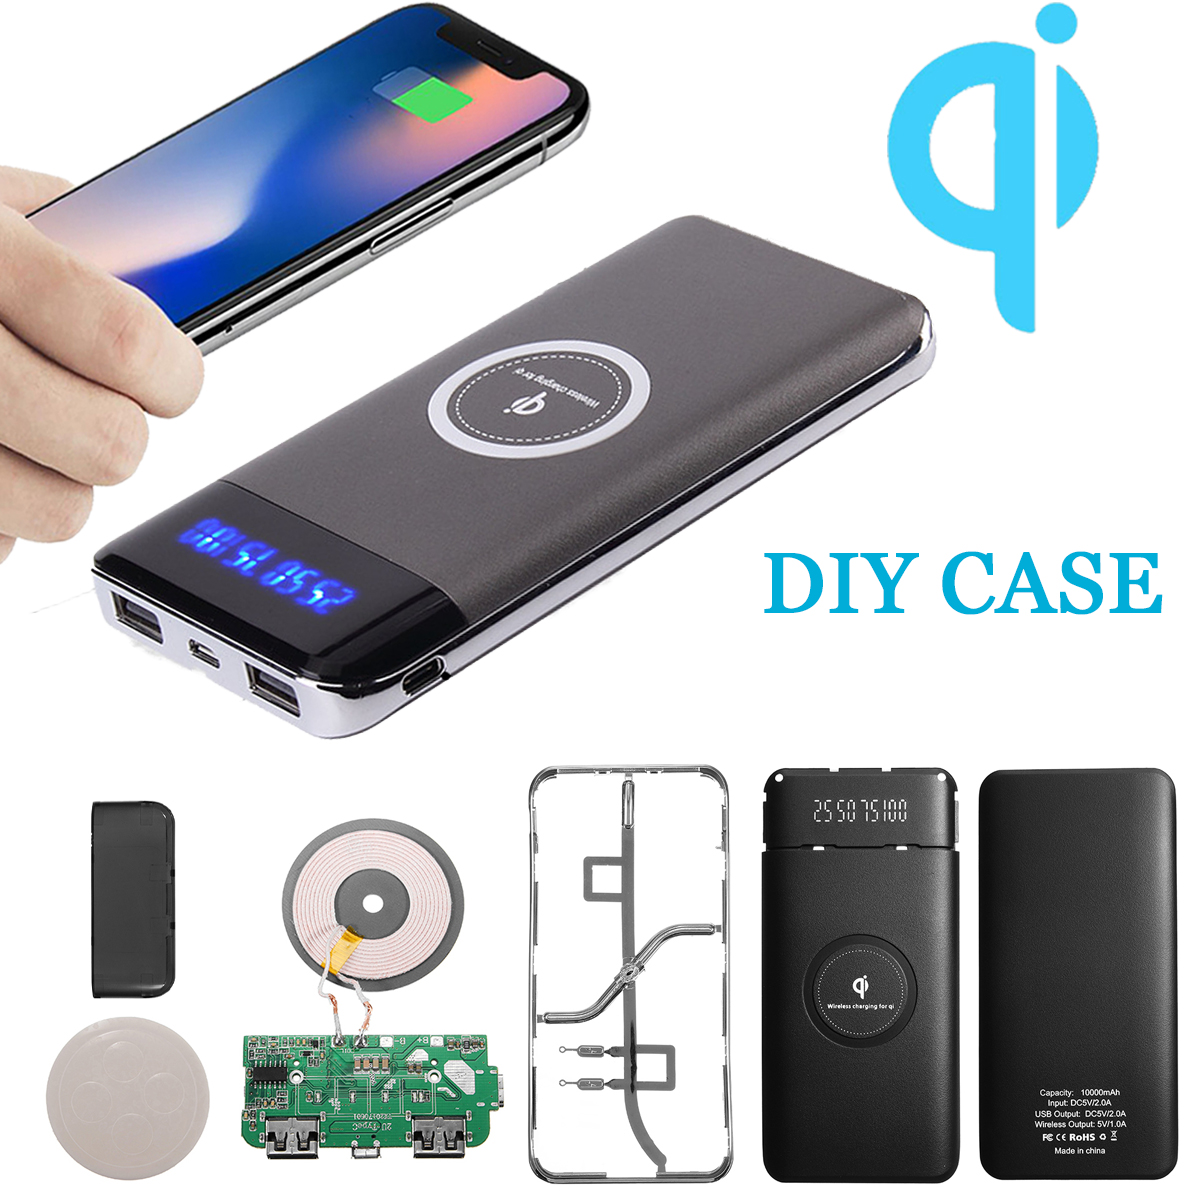 Diy Power Bank 10000mah Qi Charger Led Power Bank Diy Case Wireless Charging Iphonex Usb For Qi Enabled Devices Cell Phone